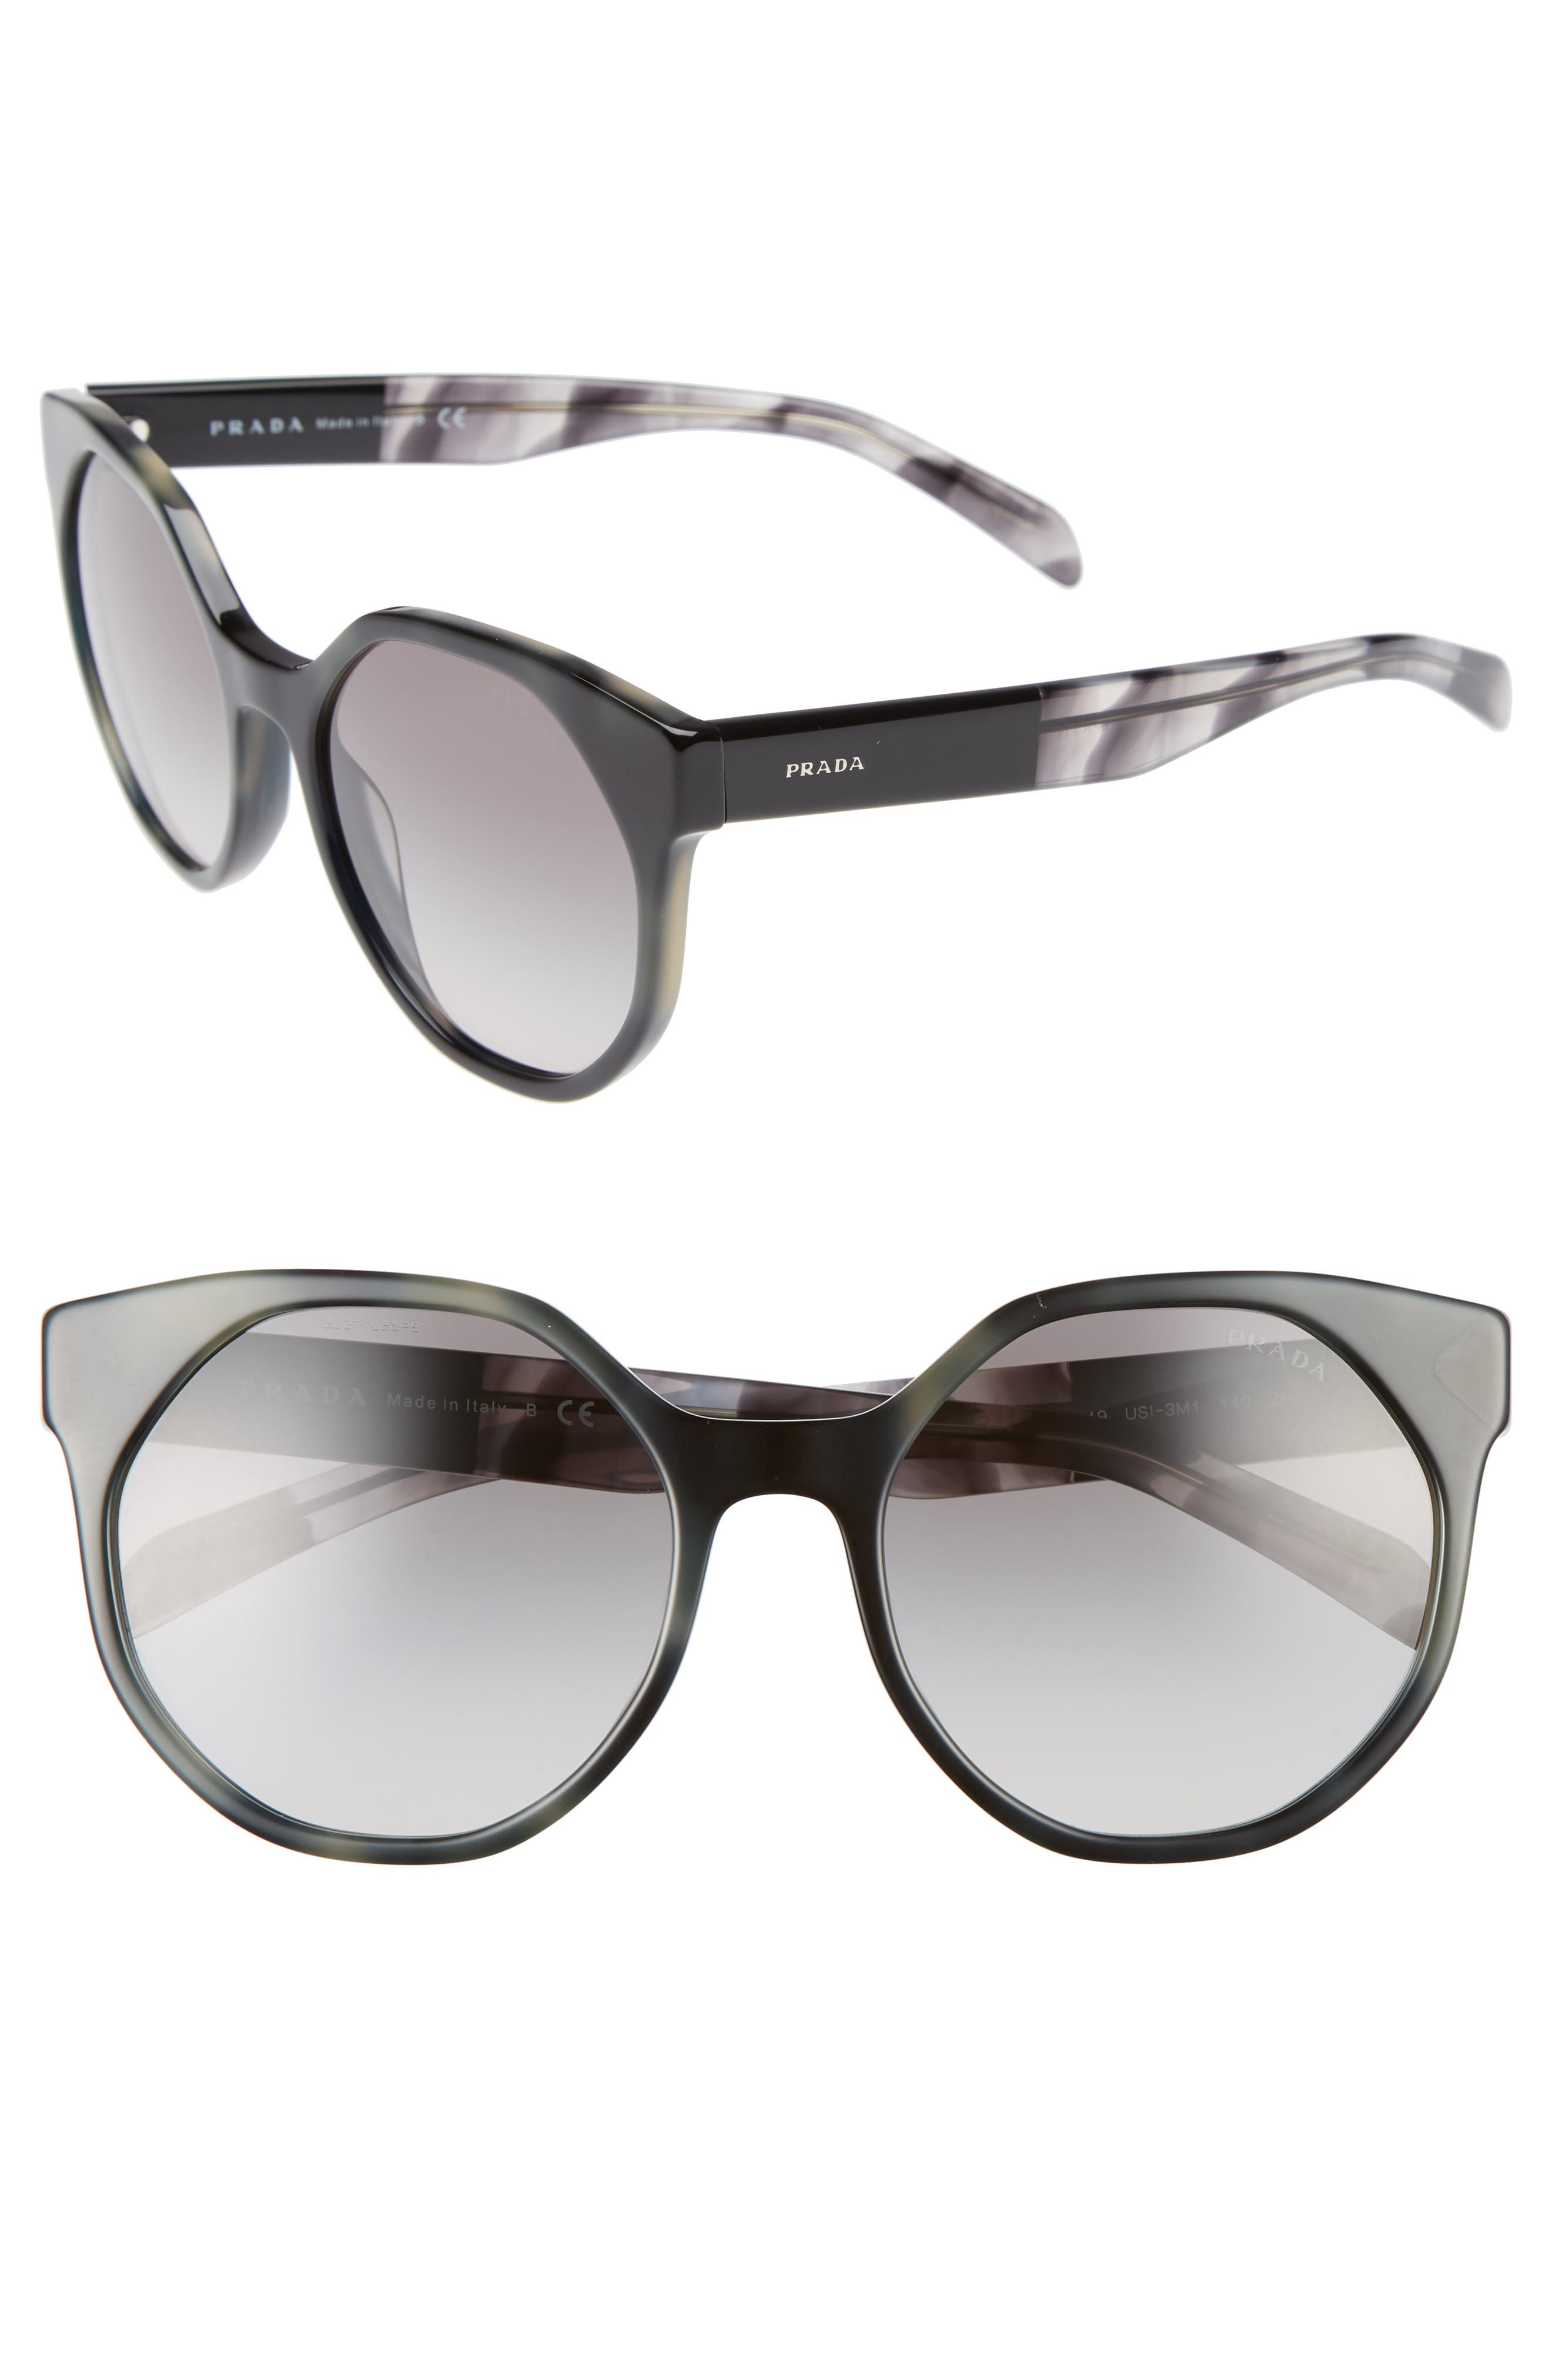 Prada 55mm Retro Sunglasses